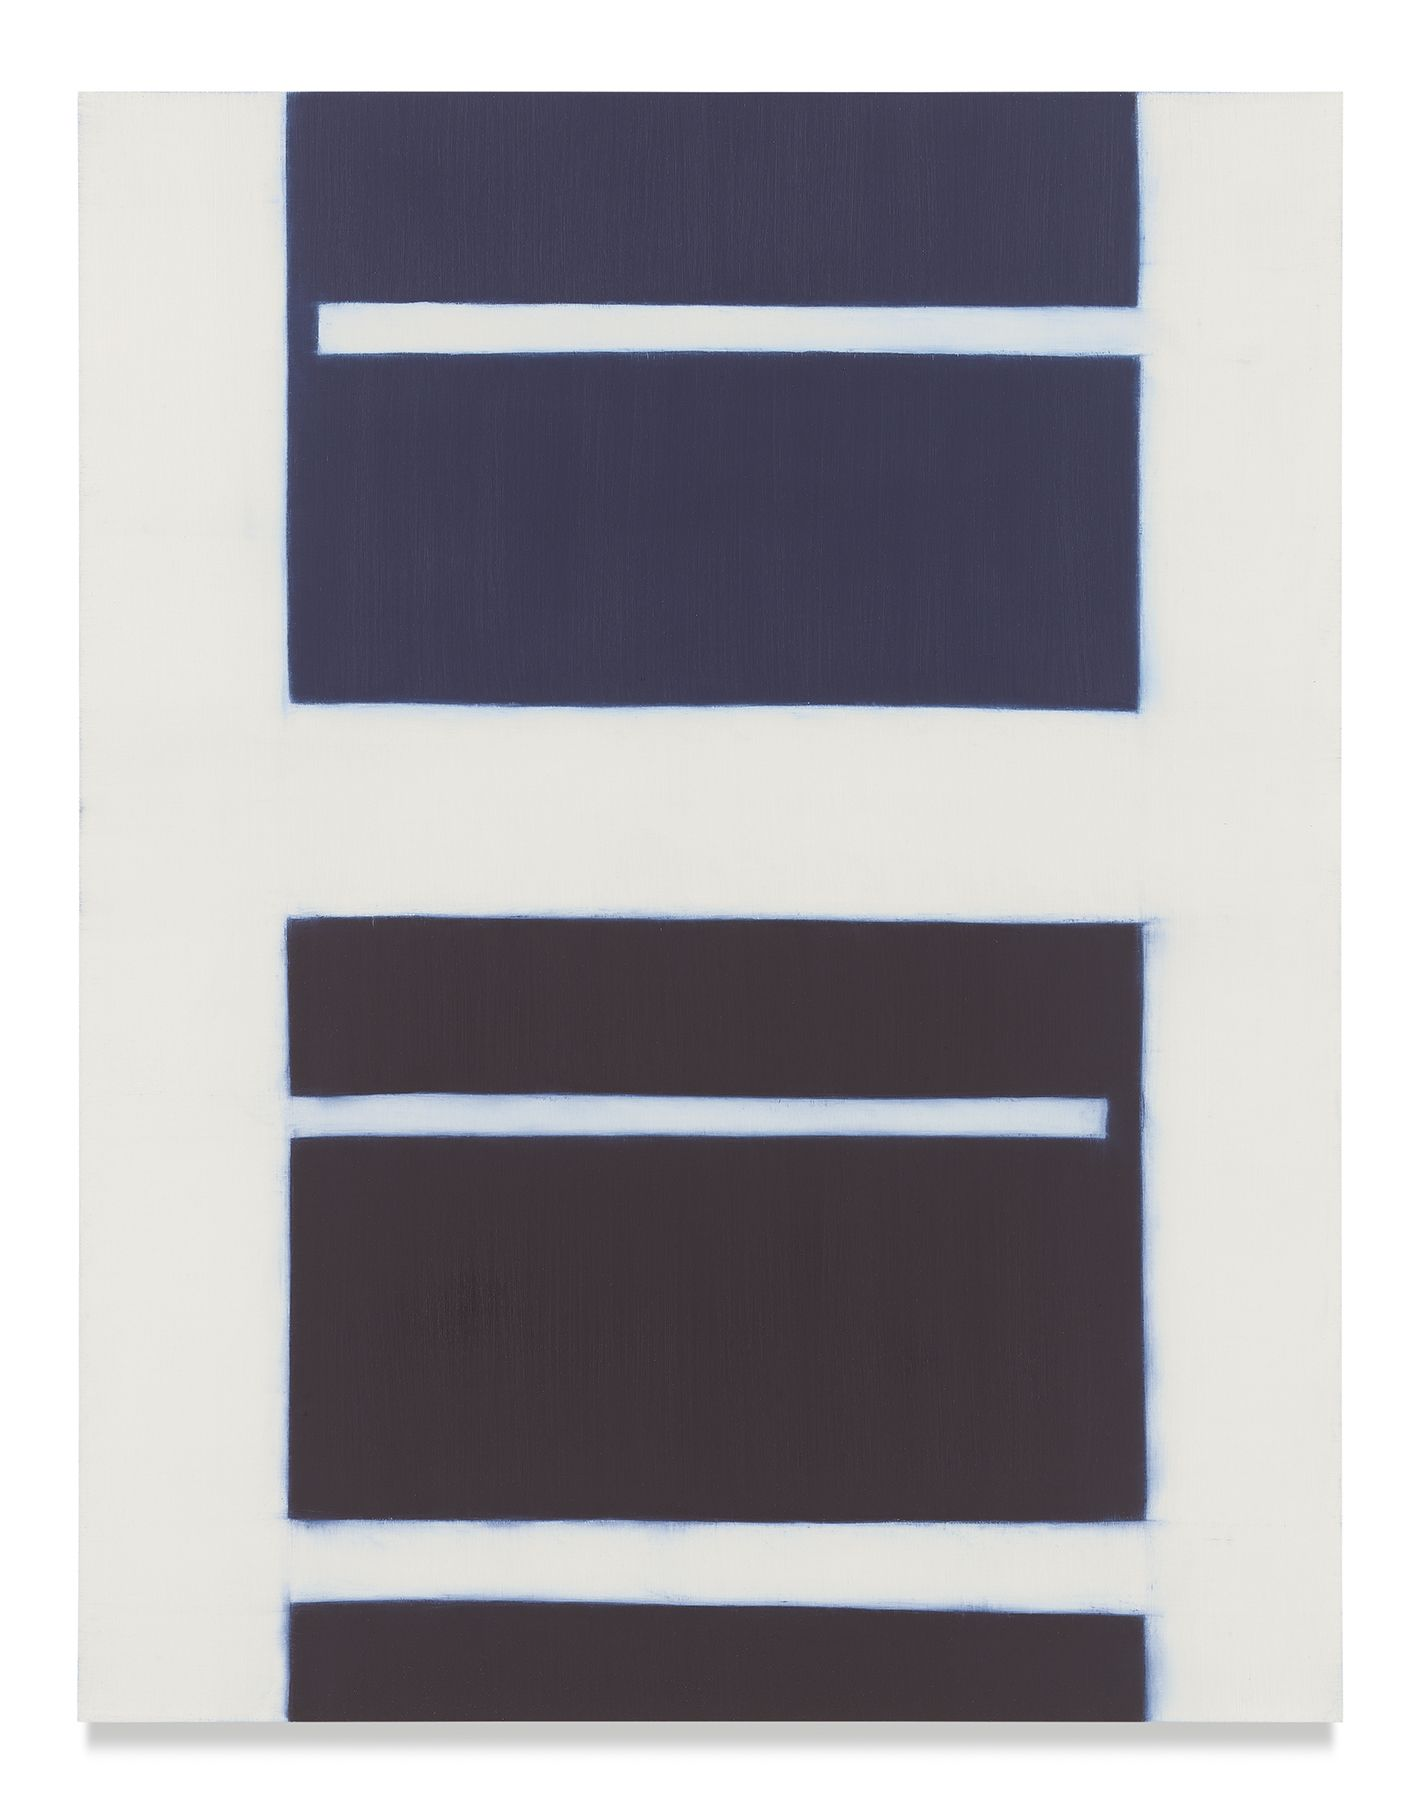 750 (letter), 2018, Oil on linen, 54 x 42 inches, 137.2 x 106.7 cm, MMG#30989